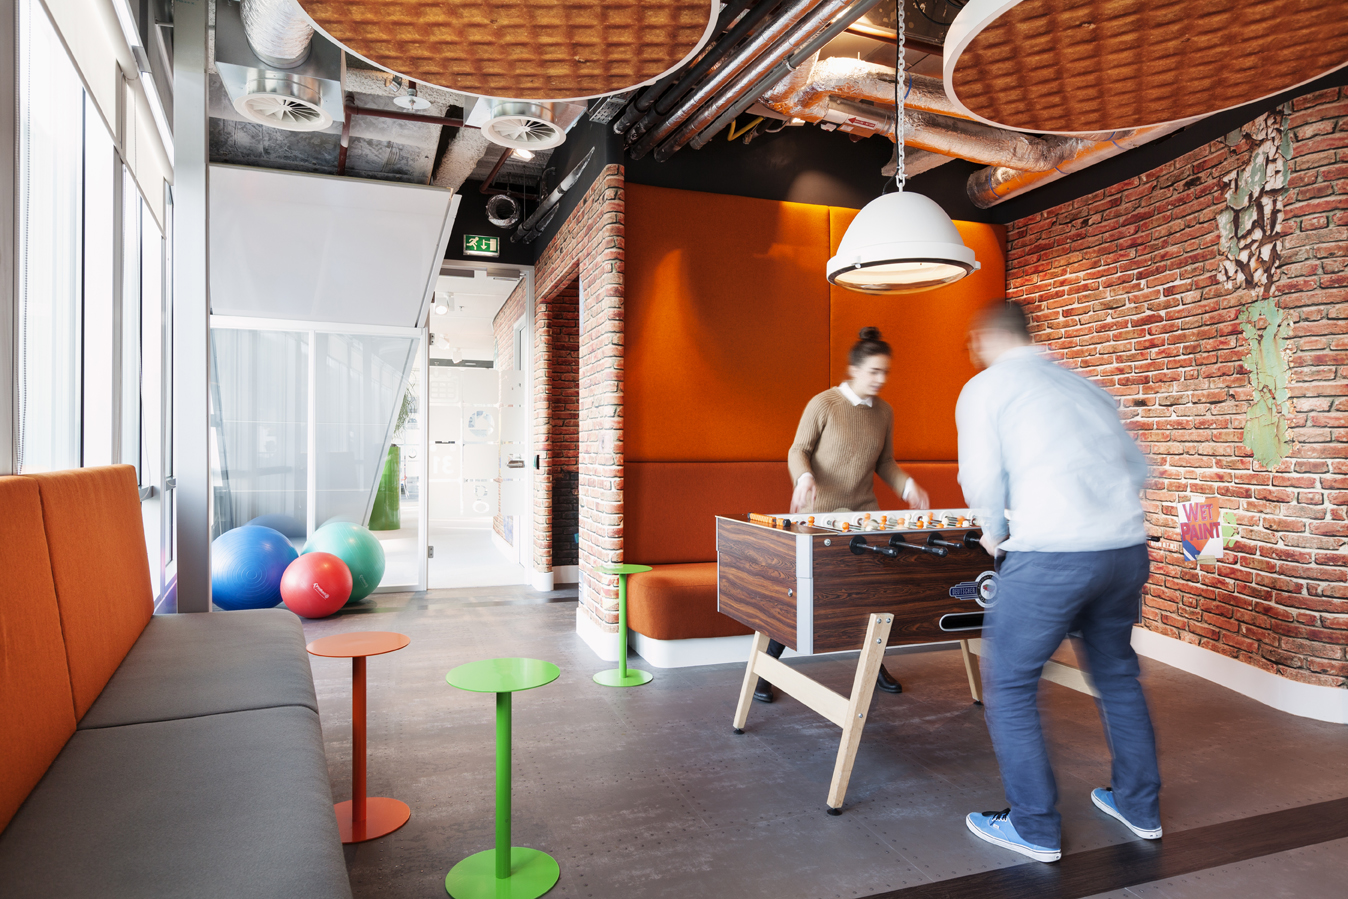 7 Reasons Why You Should Have a Foosball Table in Your Office